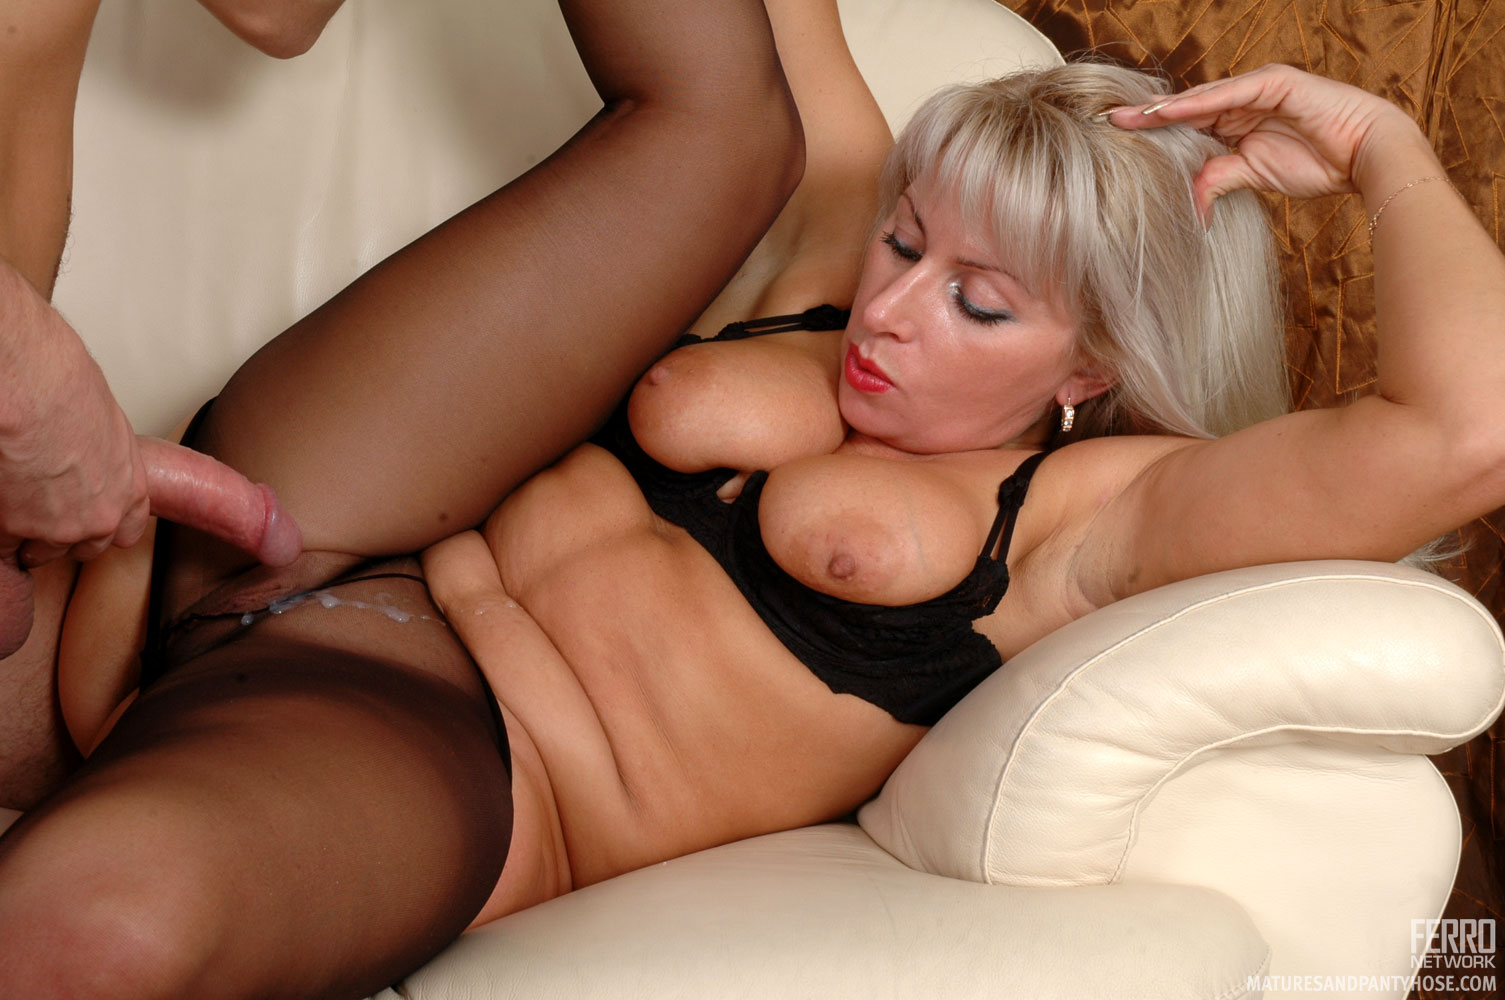 Mature Stockings Porn Videos